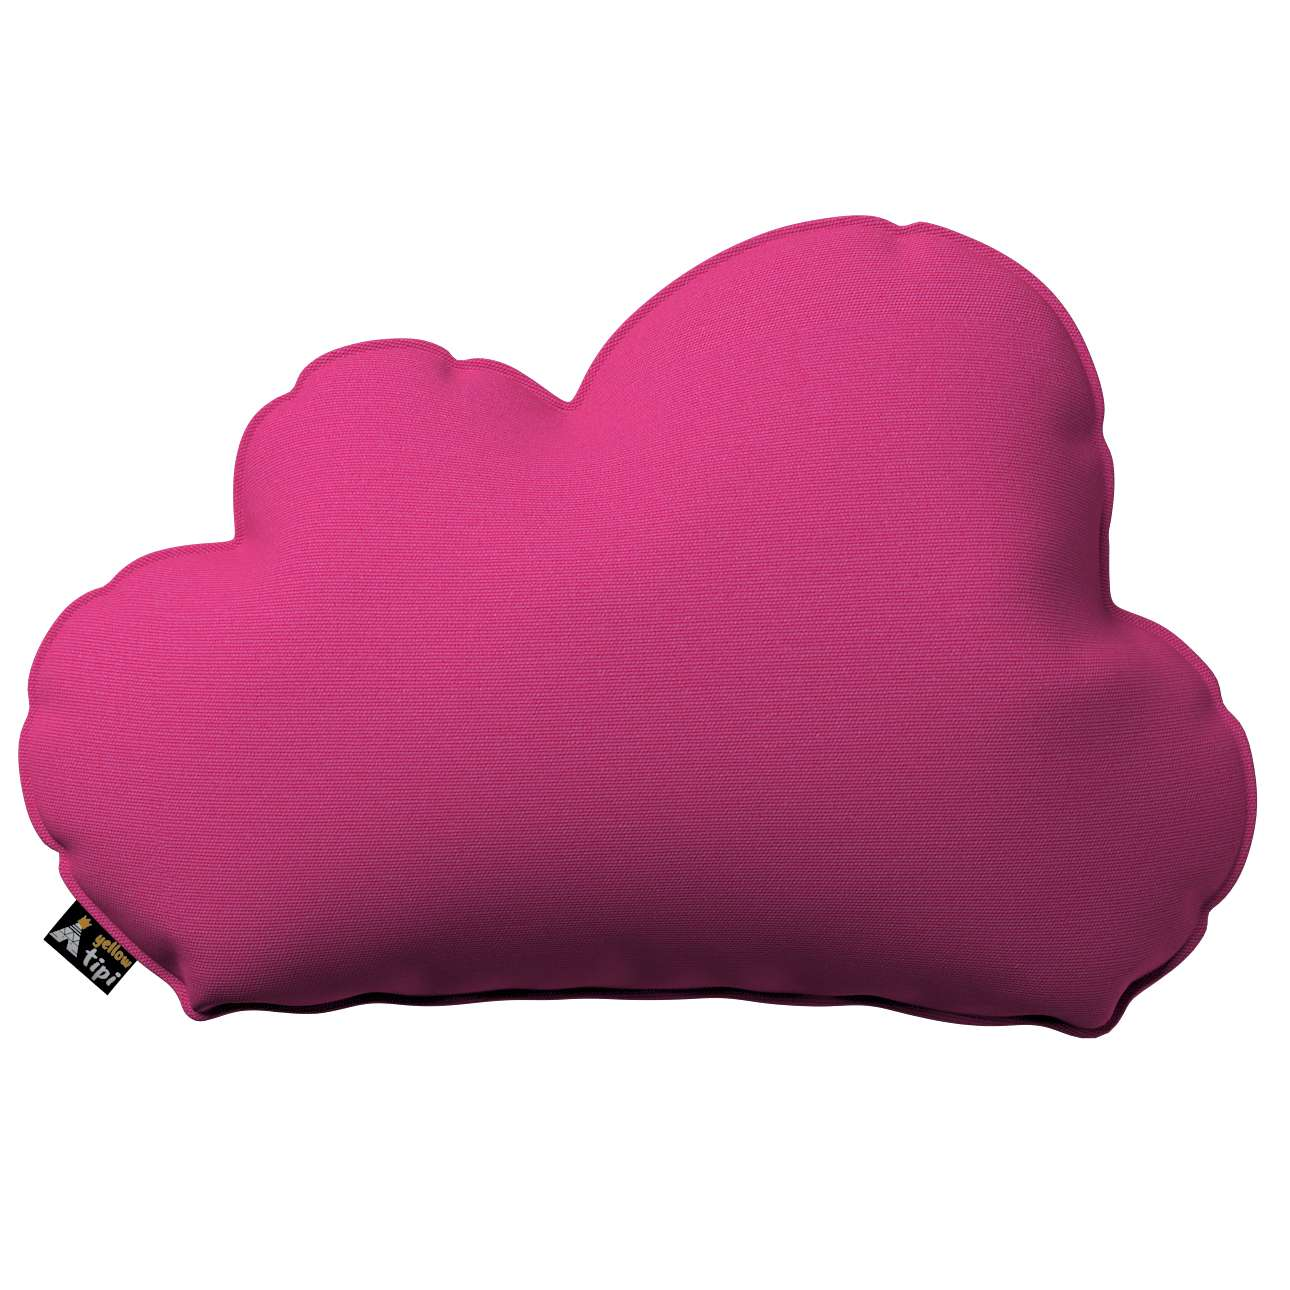 Kissen Soft Cloud von der Kollektion Happiness, Stoff: 133-60